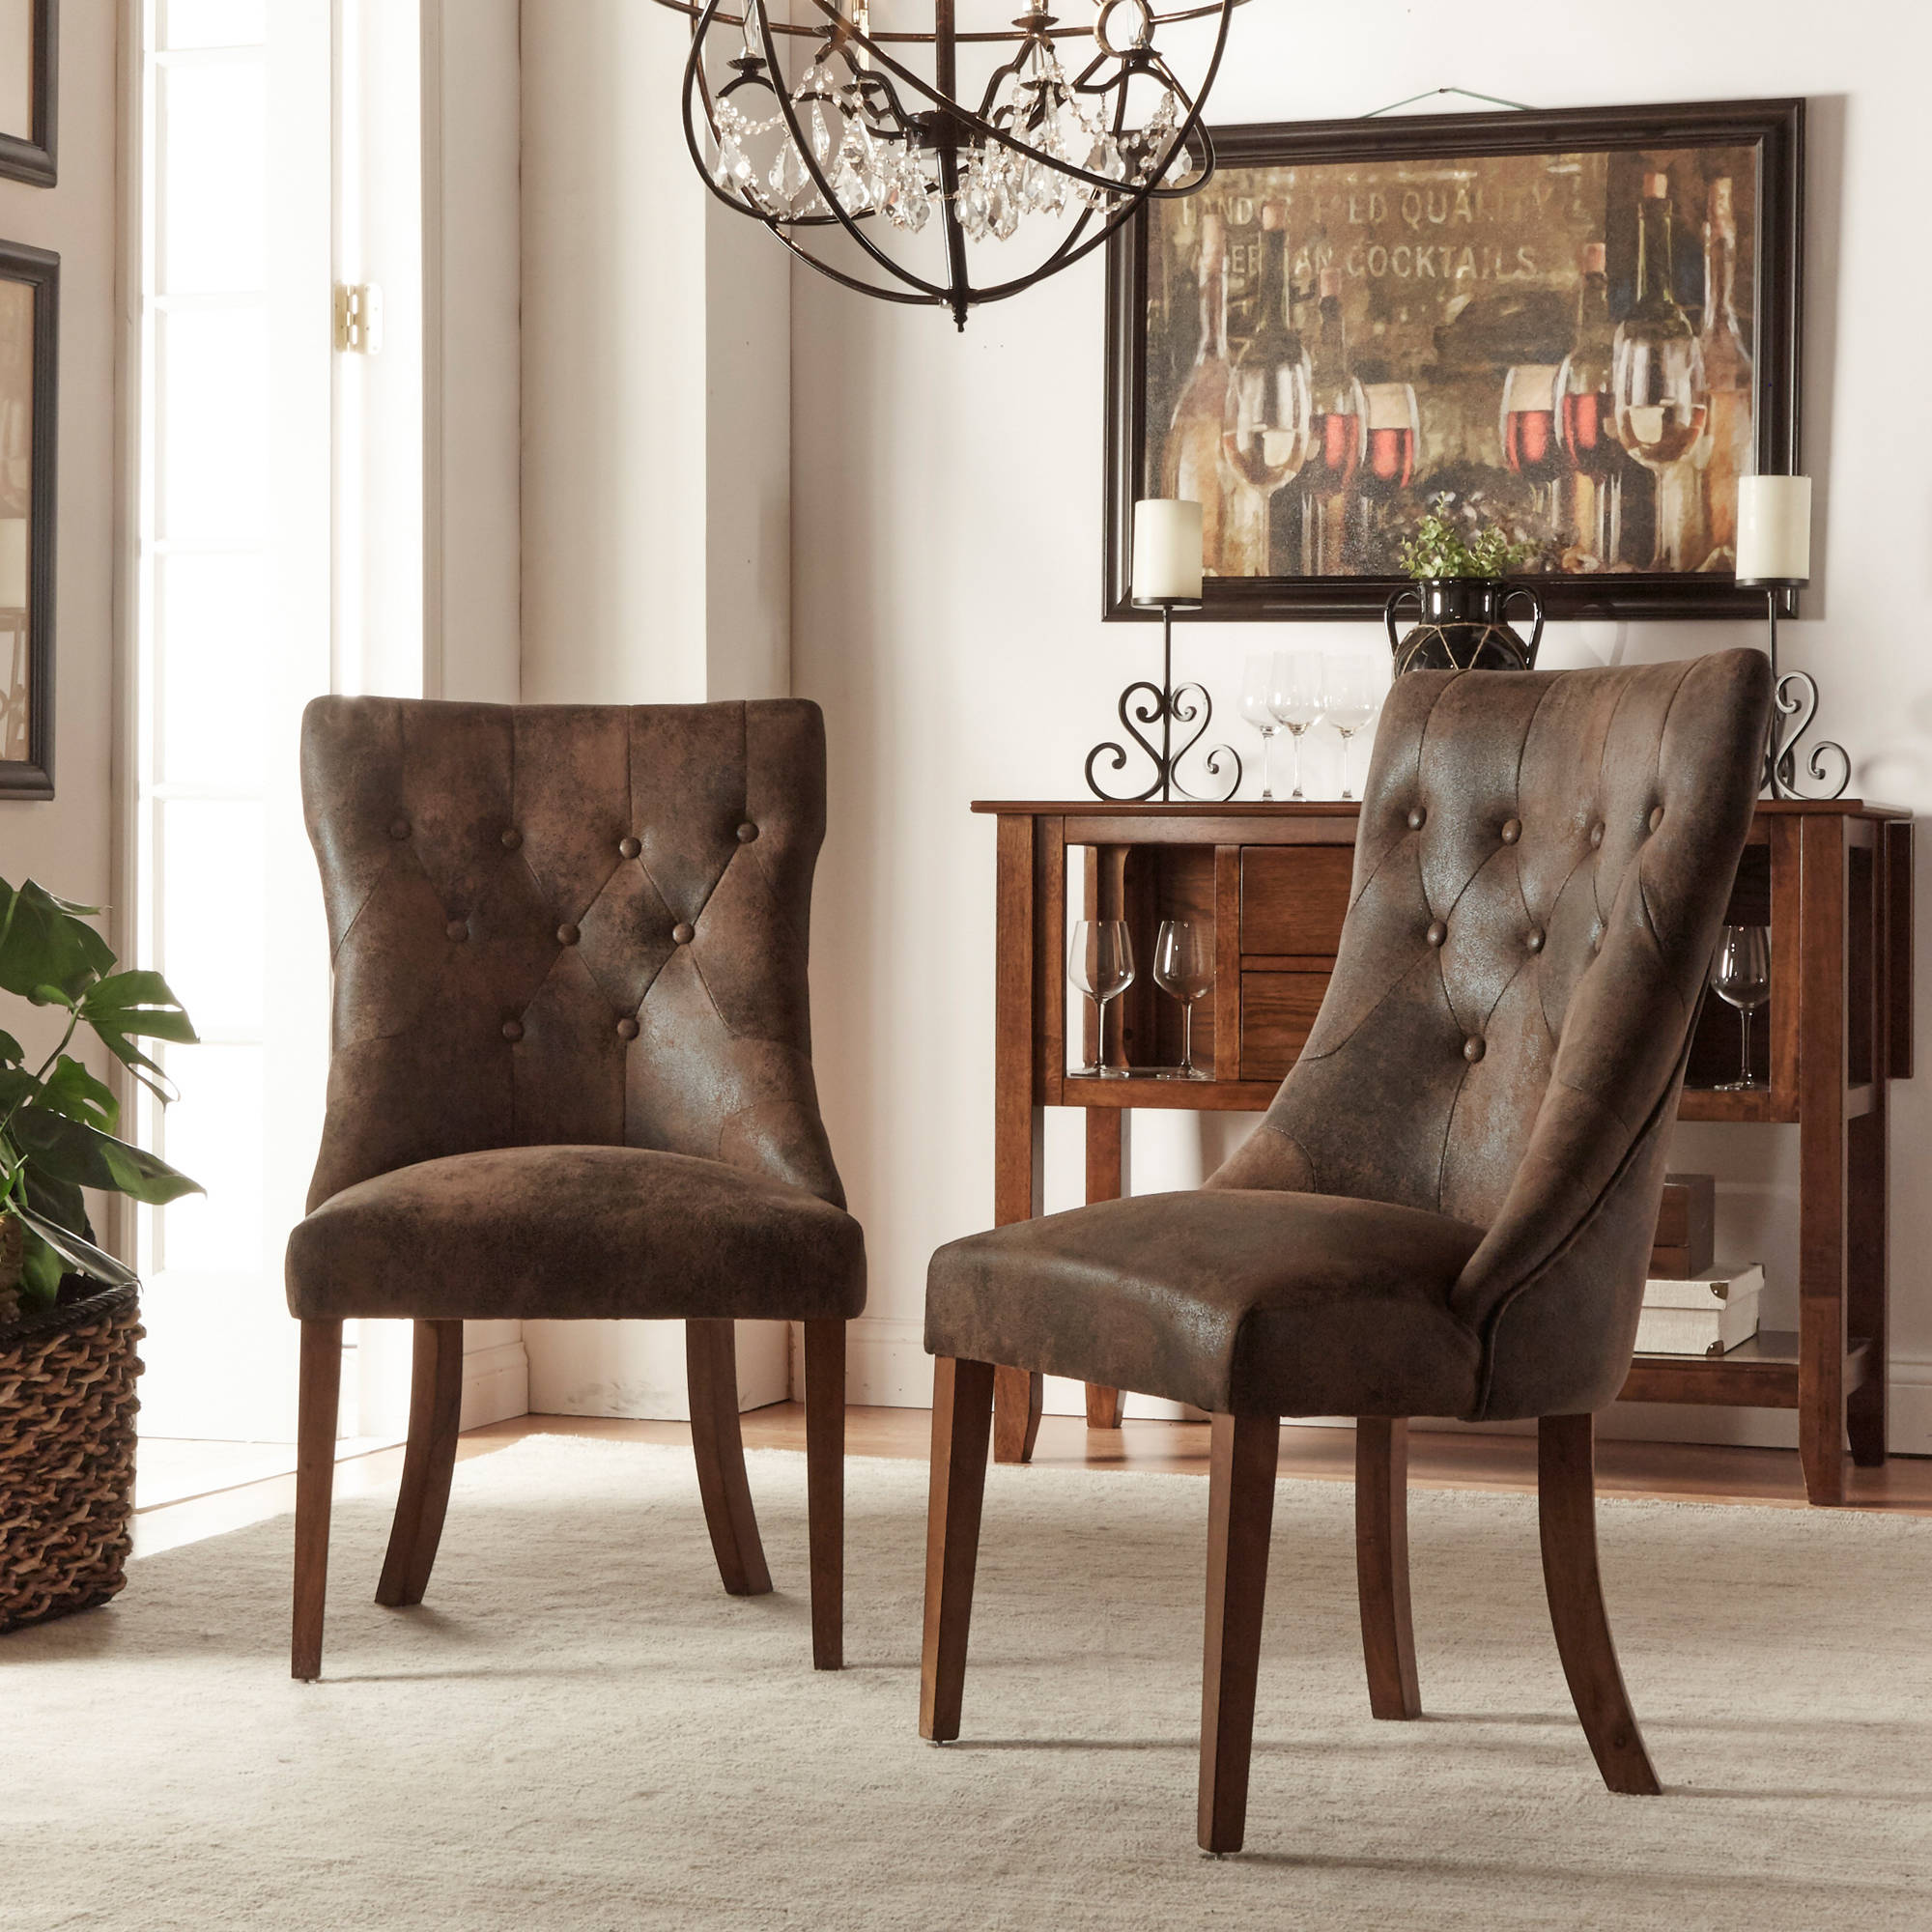 Weston Home Upholstered Tufted Side Chair Set of 2 Oak